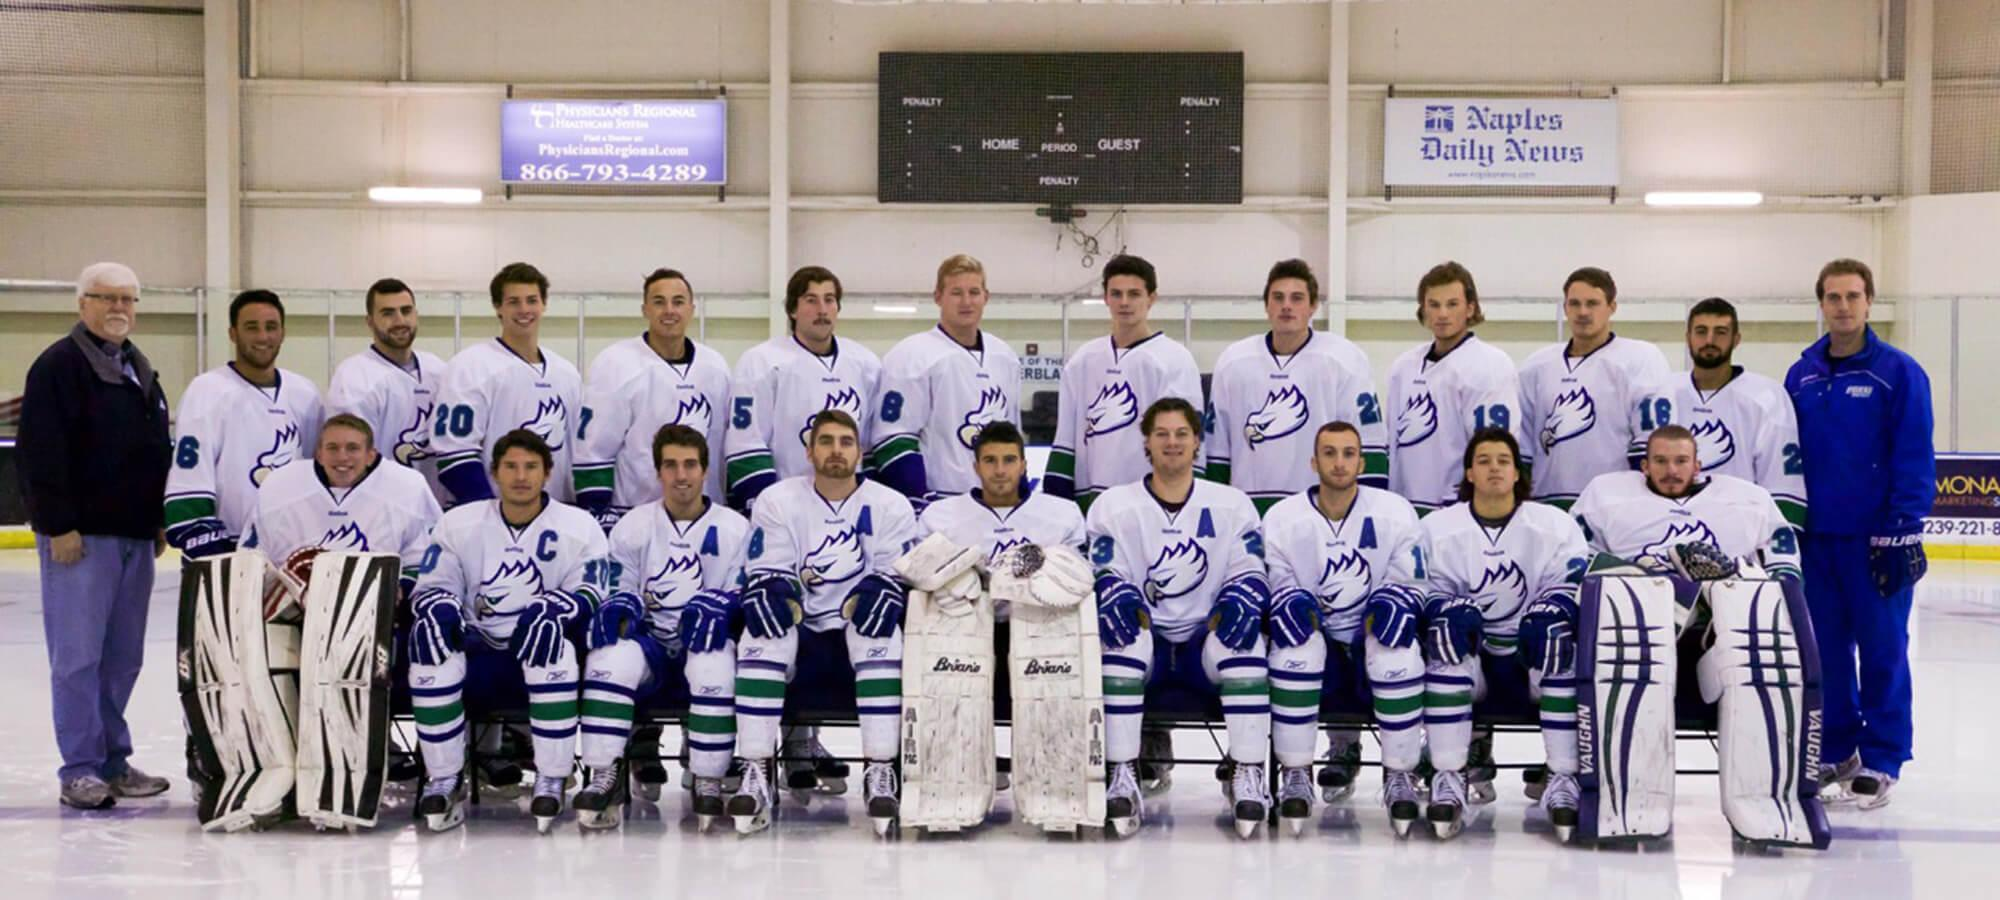 FGCU DII hockey advances in national championship after Keene State blowout